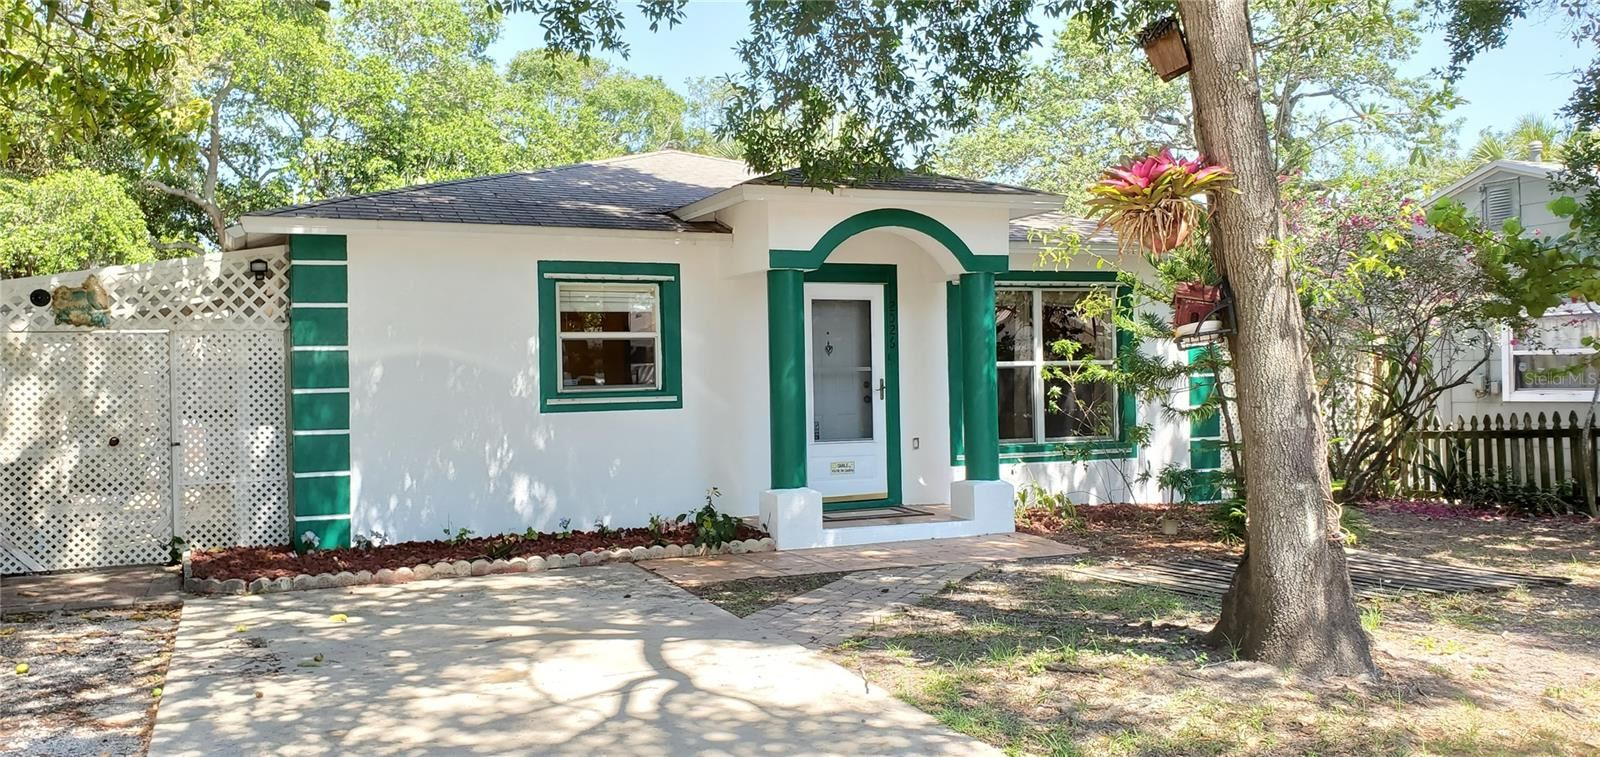 2026 44TH STREET S, Saint Petersburg, FL 33711 - MLS#: U8122468